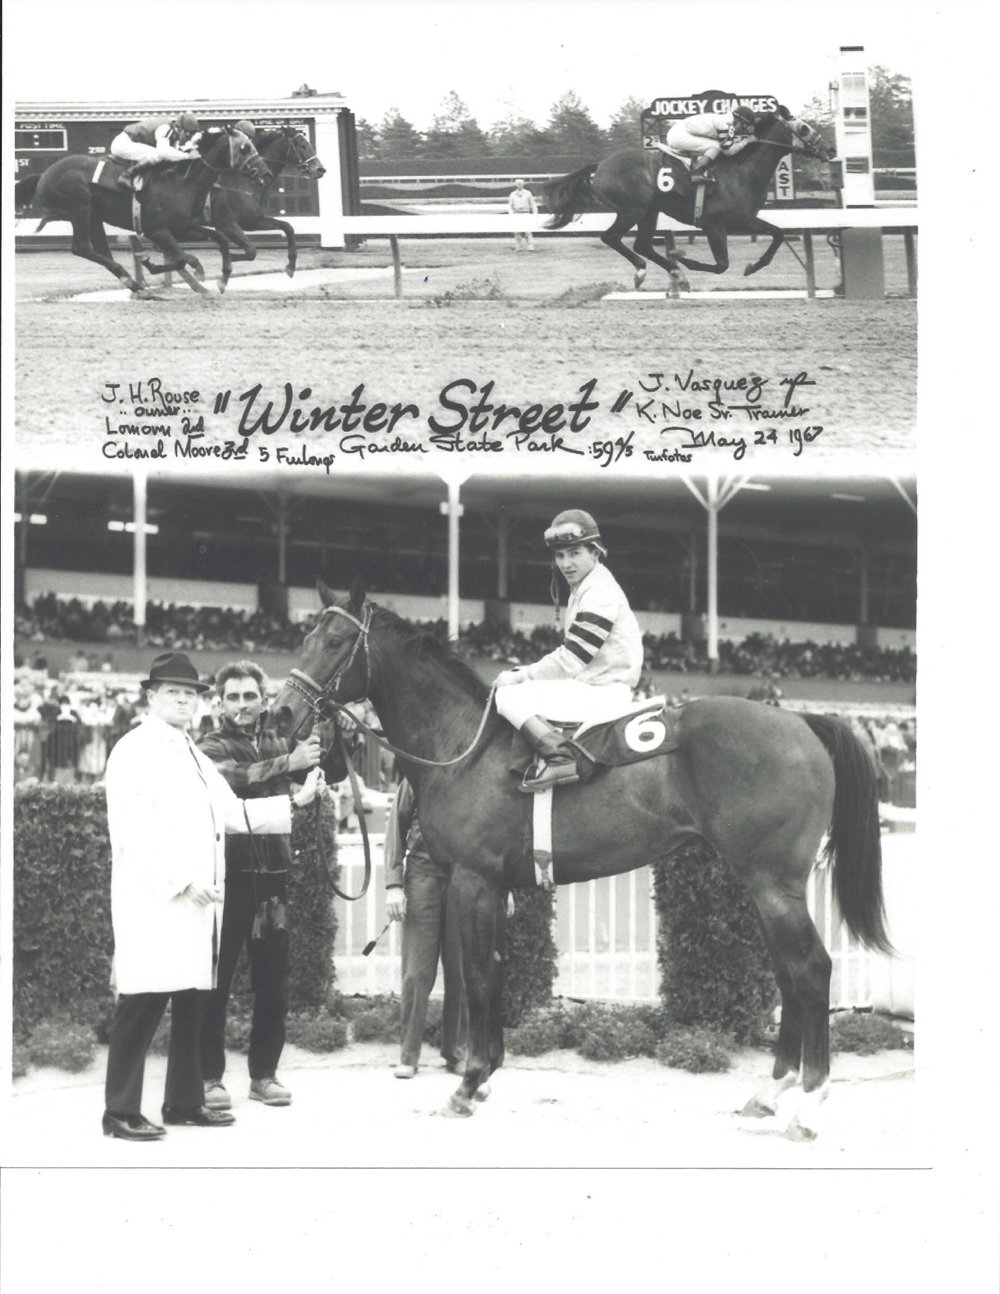 While Howard Rouse did not own any Derby horses, he did have a few winners, including Winter Street, who won a Garden State Park (N.J.) race in 1967. The horse was named after the main road through Midway, U.S. 62, or Winter Street, where he and Honeywood lived. Howard is not in the picture above, because he usually shunned the winner's circle.